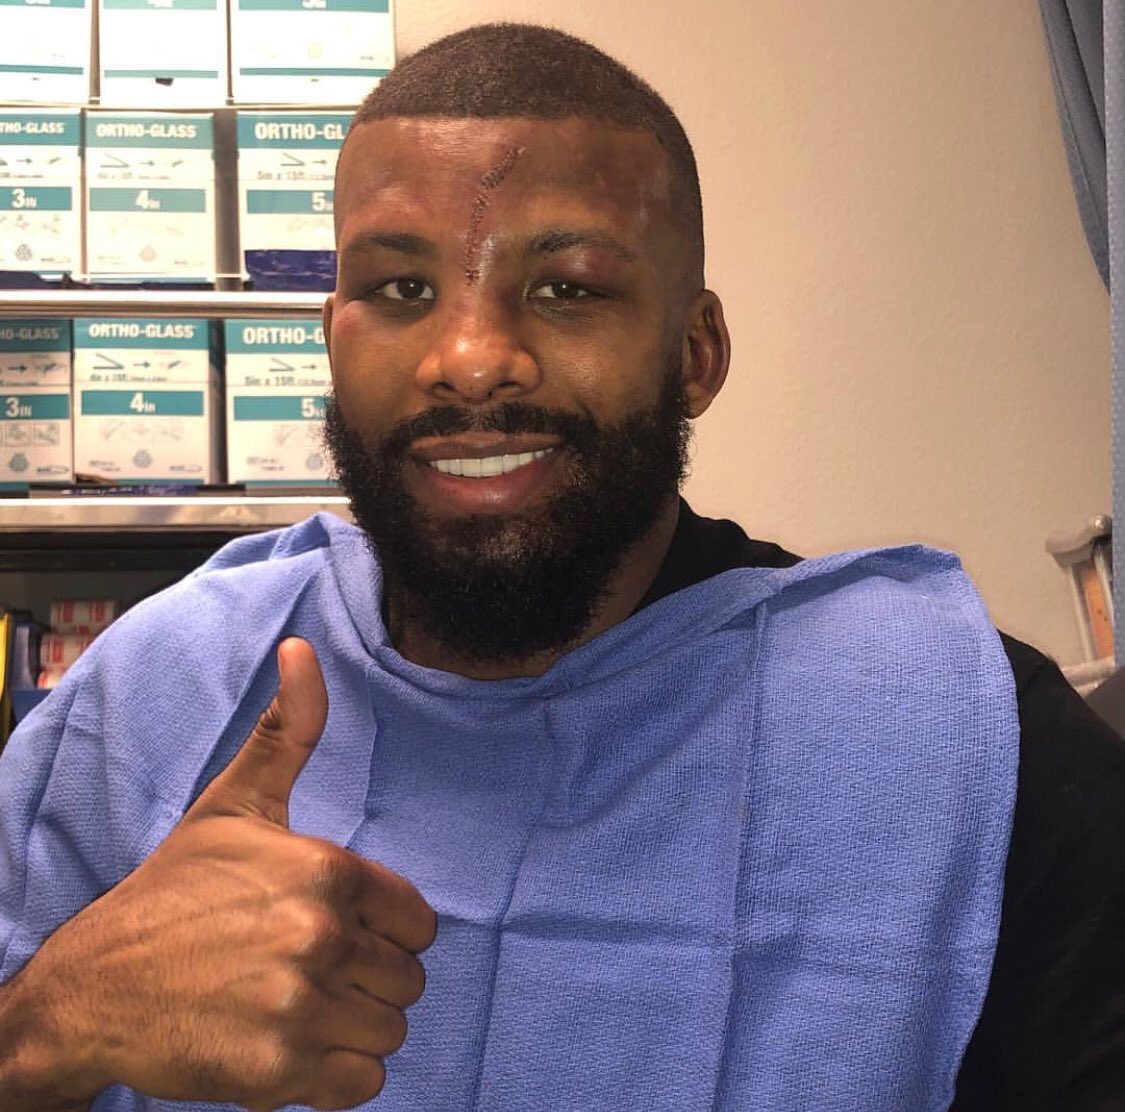 test Twitter Media - We're proud of our warrior and champion @badoujack and wish him a speedy recovery. Salute to Team Jack for always supporting Badou! 🥊 https://t.co/VloX46caQJ